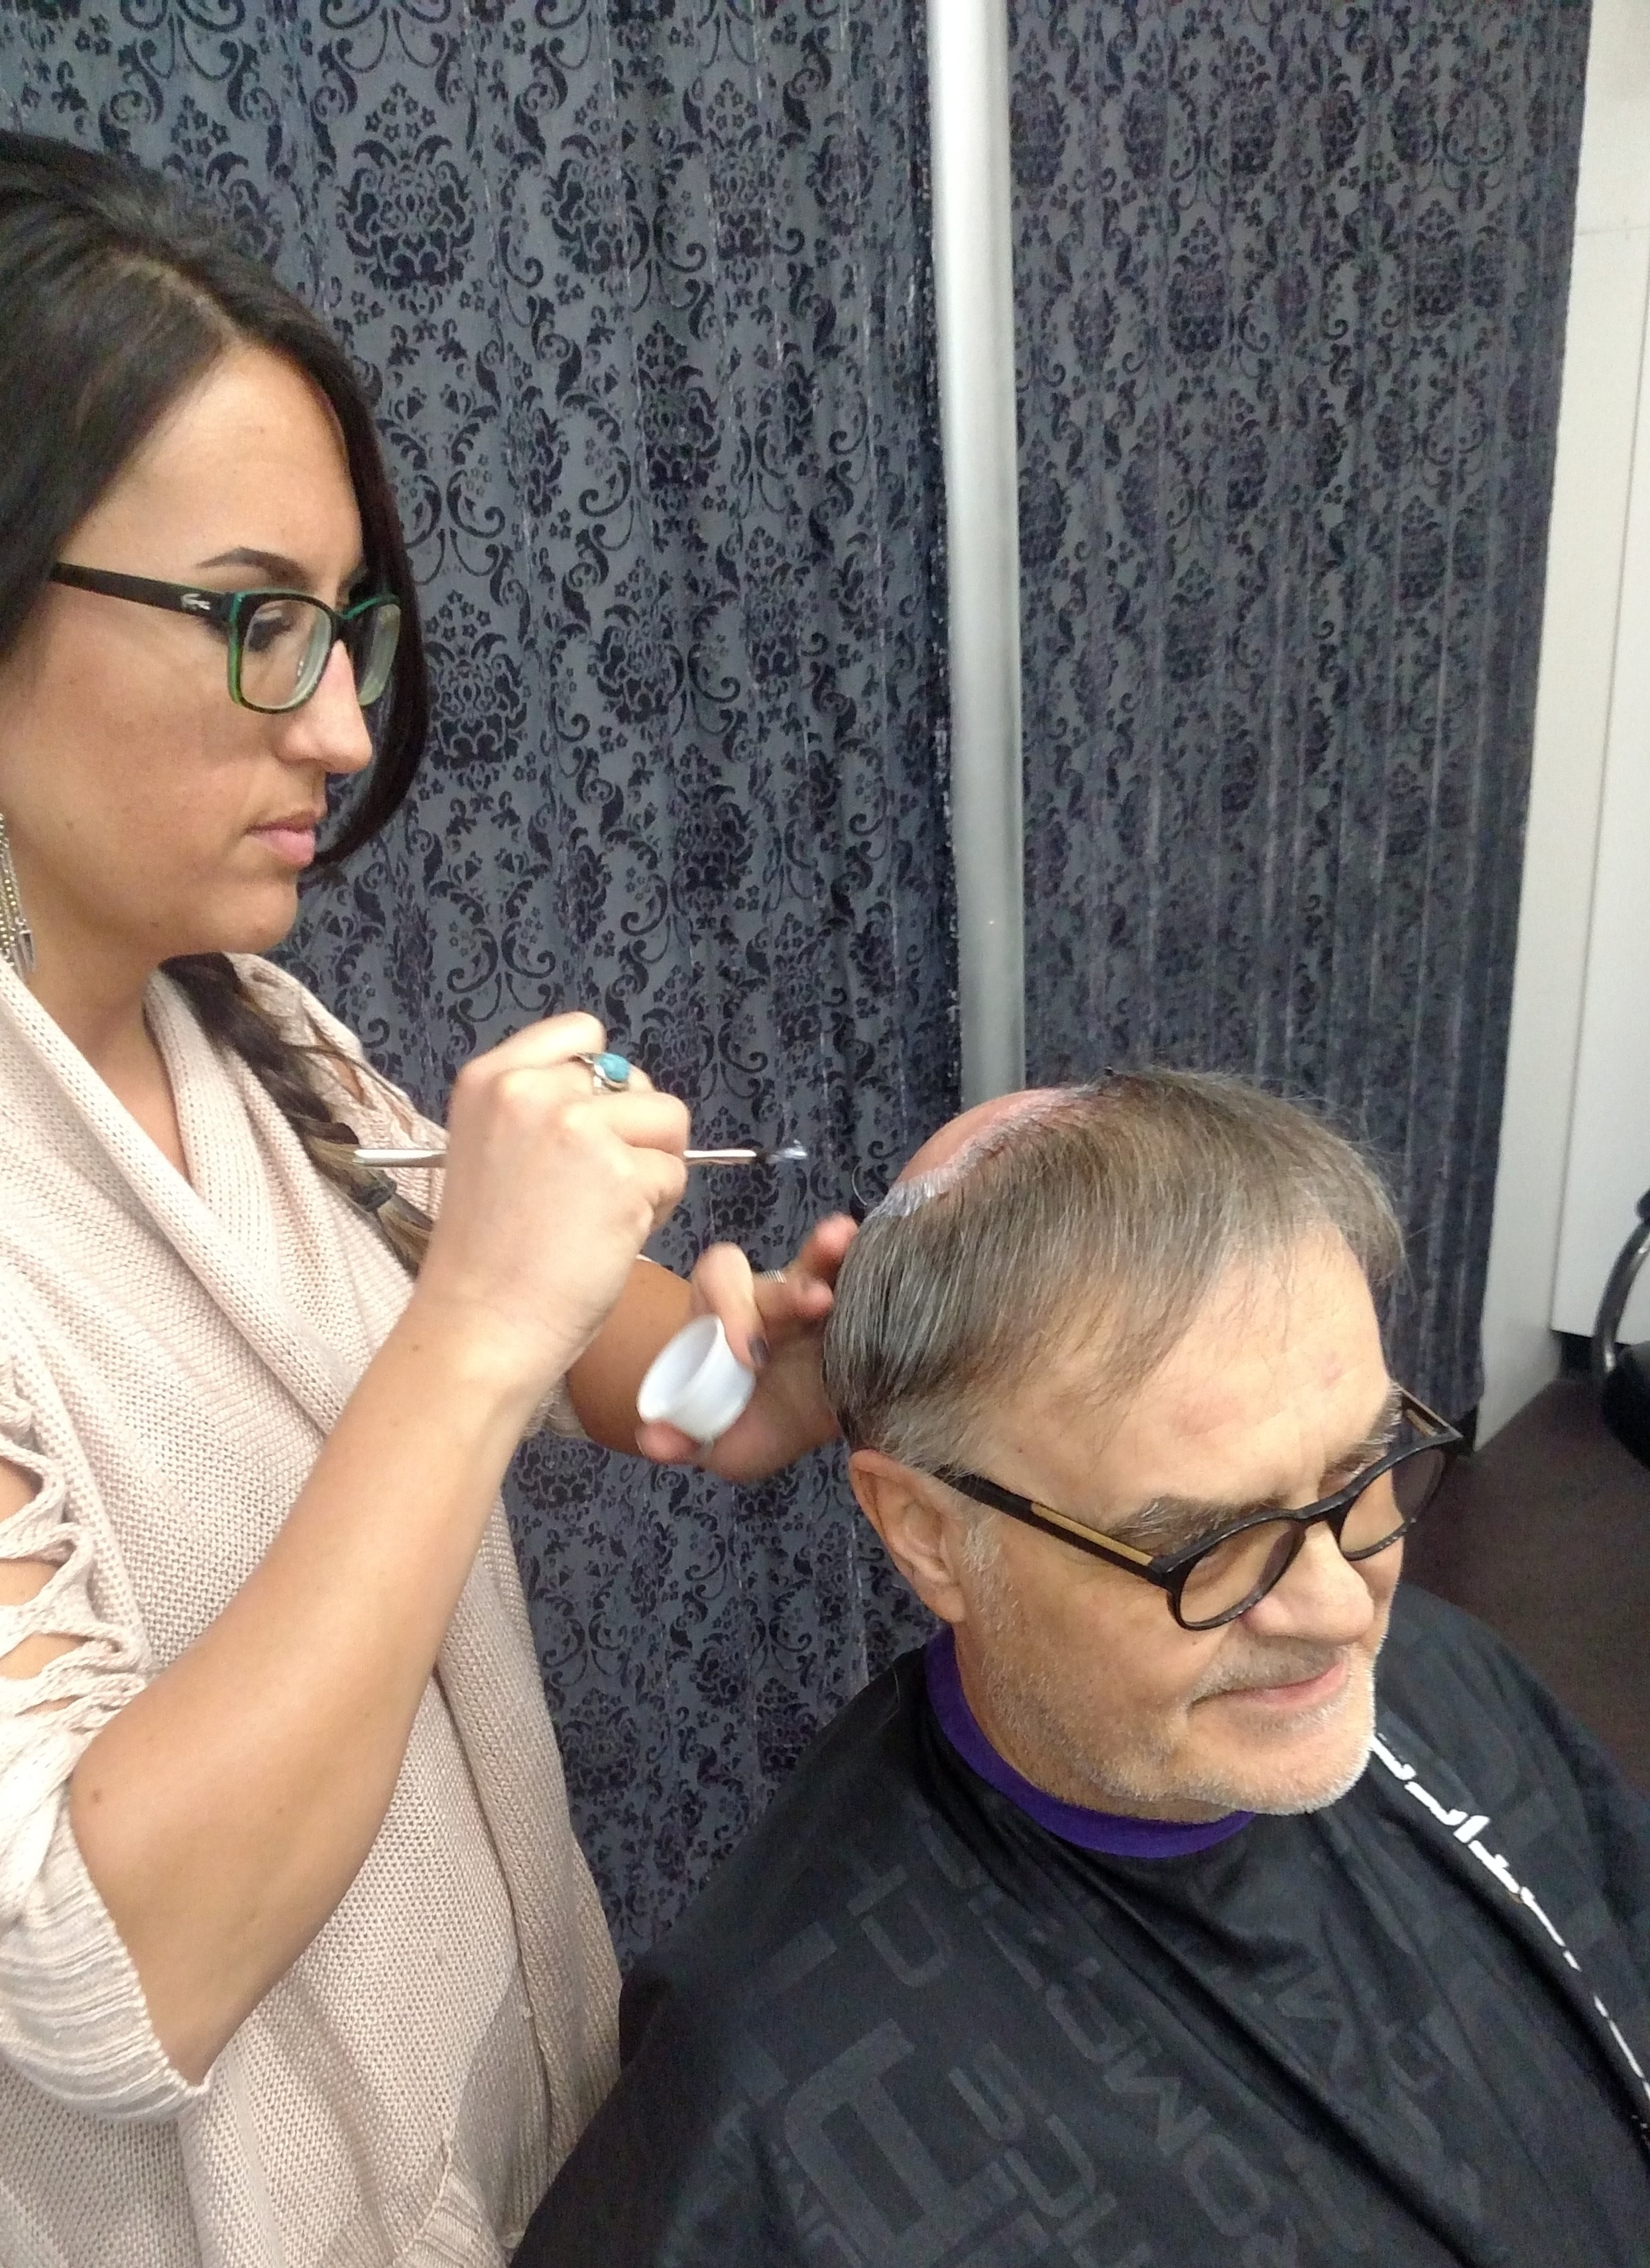 Danielle is the latest stylist to offer Hair Replacement services, a specialty at TOMORROWS.